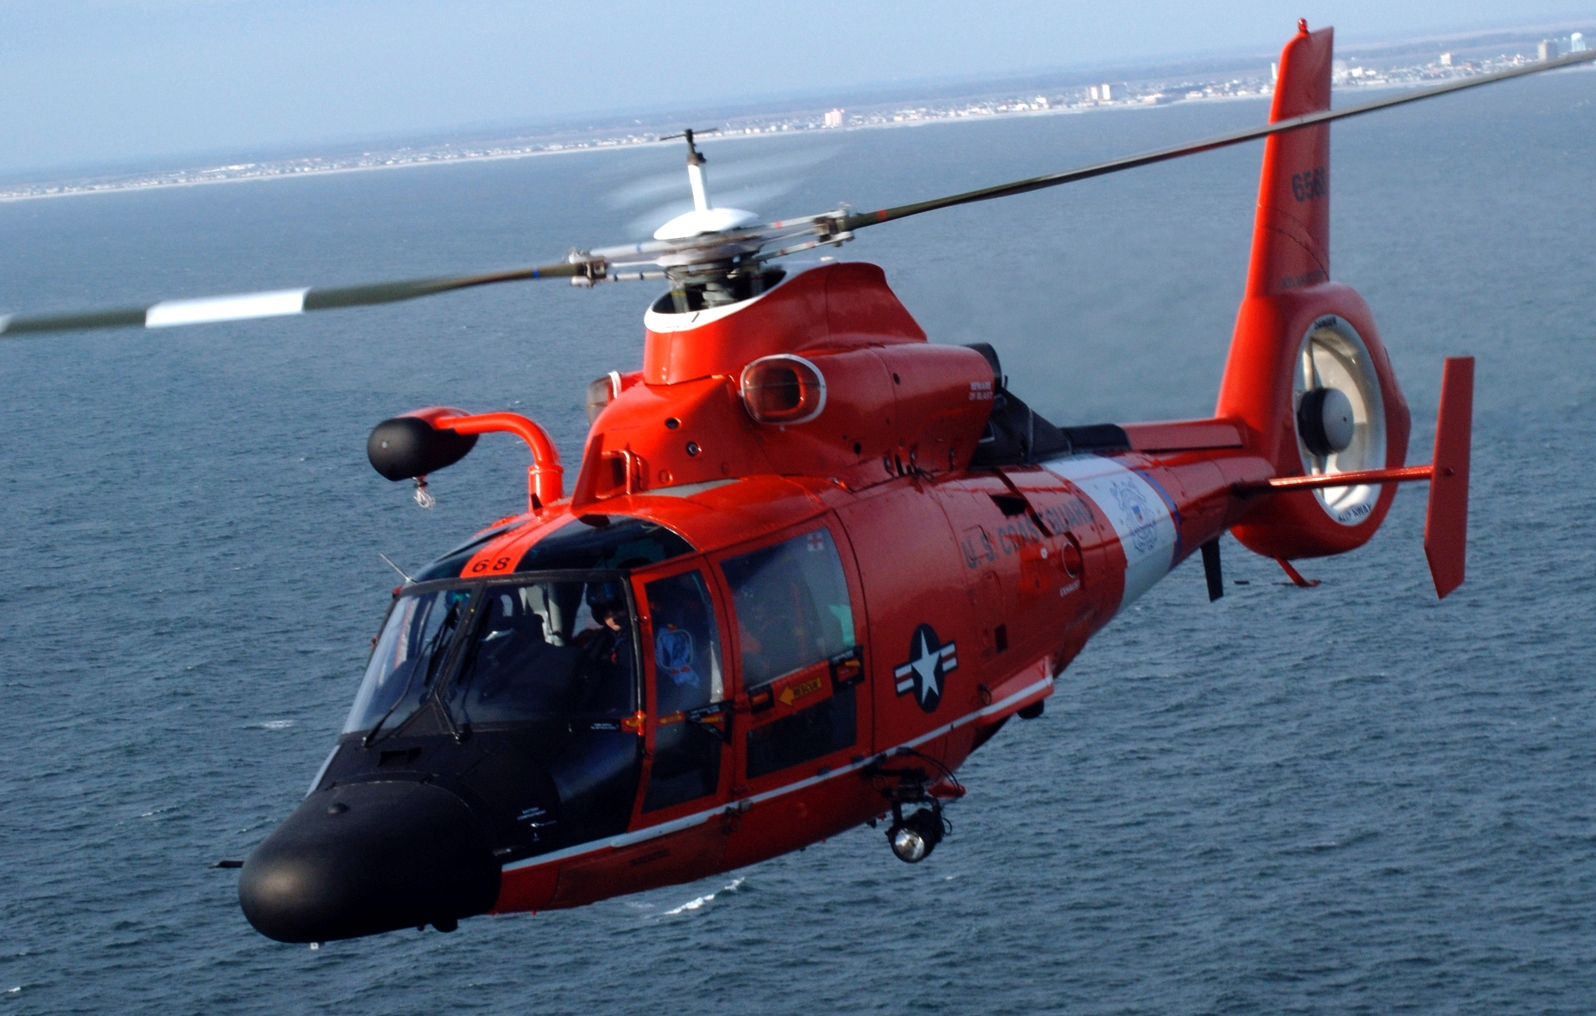 mh 65 dolphin helicopter with File Mh 65c Dolphin on 19590 also Us Coast Guard Medevacs Sailor From Uss Princeton further Guardians Report In Cdr Diane Durham likewise File USCG HH 65 together with Cockpit  munication.